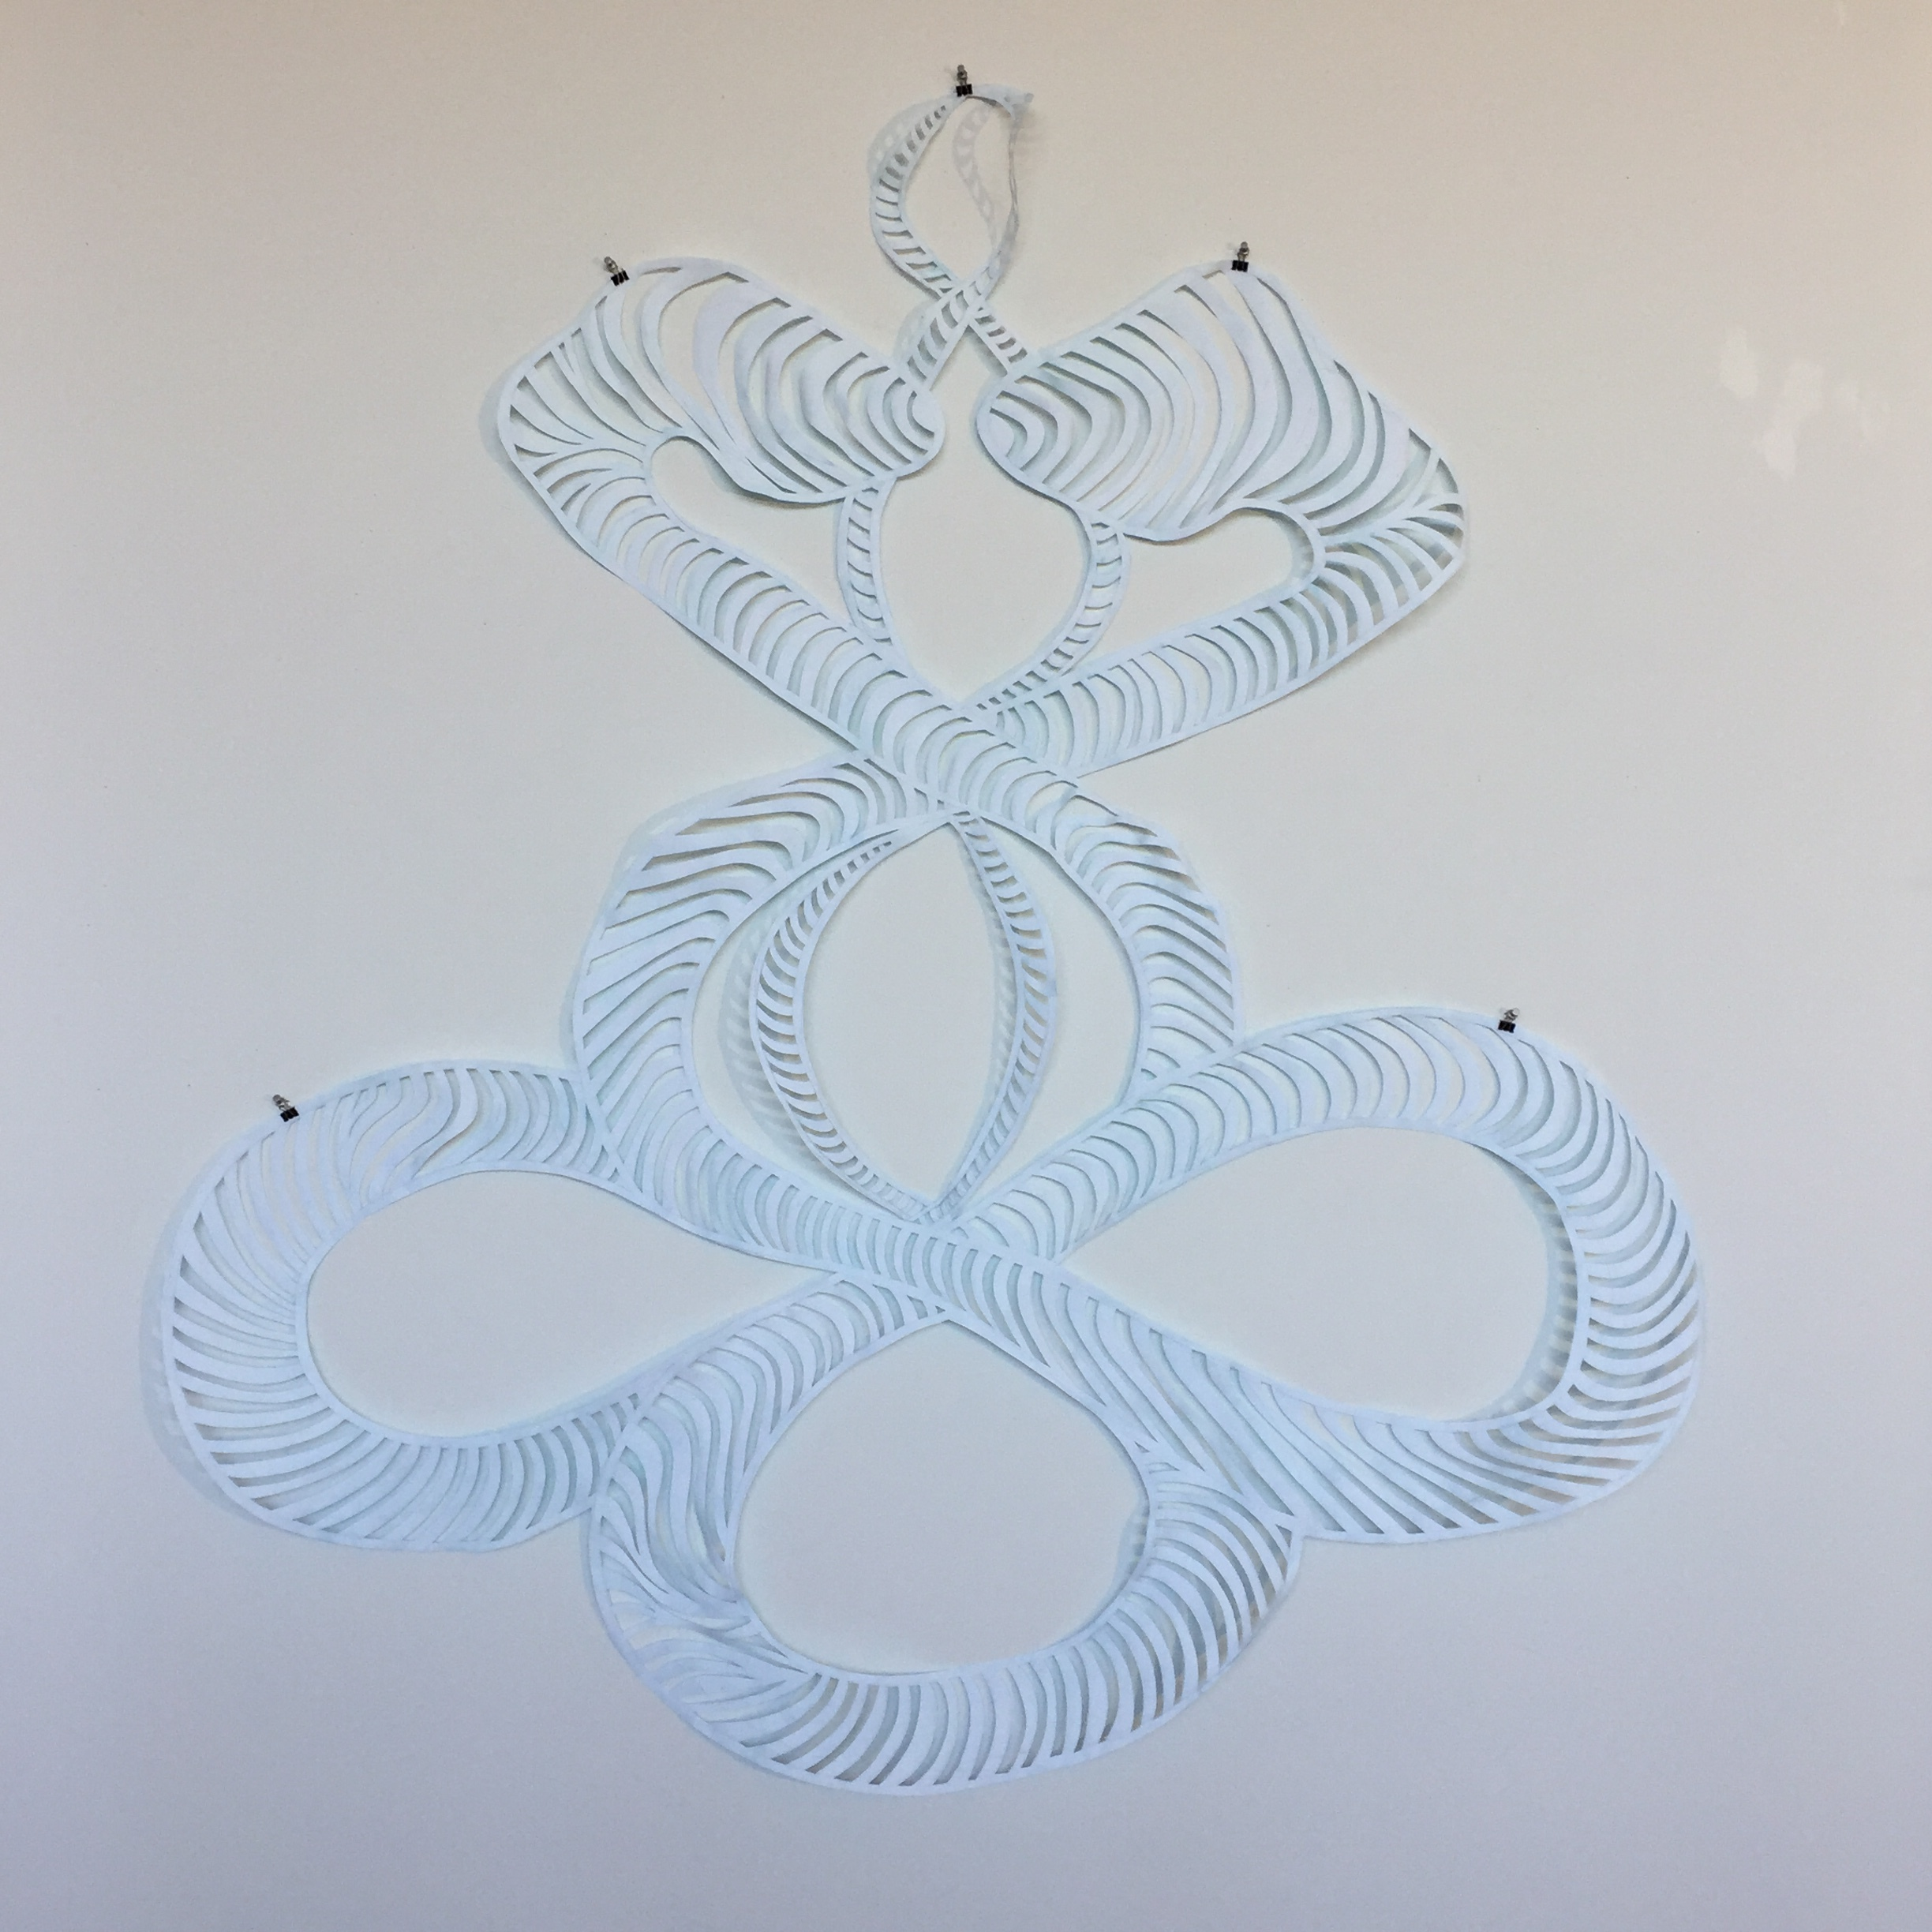 Double Helix Snakes, 2017, watercolor and Flashe on cut paper, 60 x 69 inches